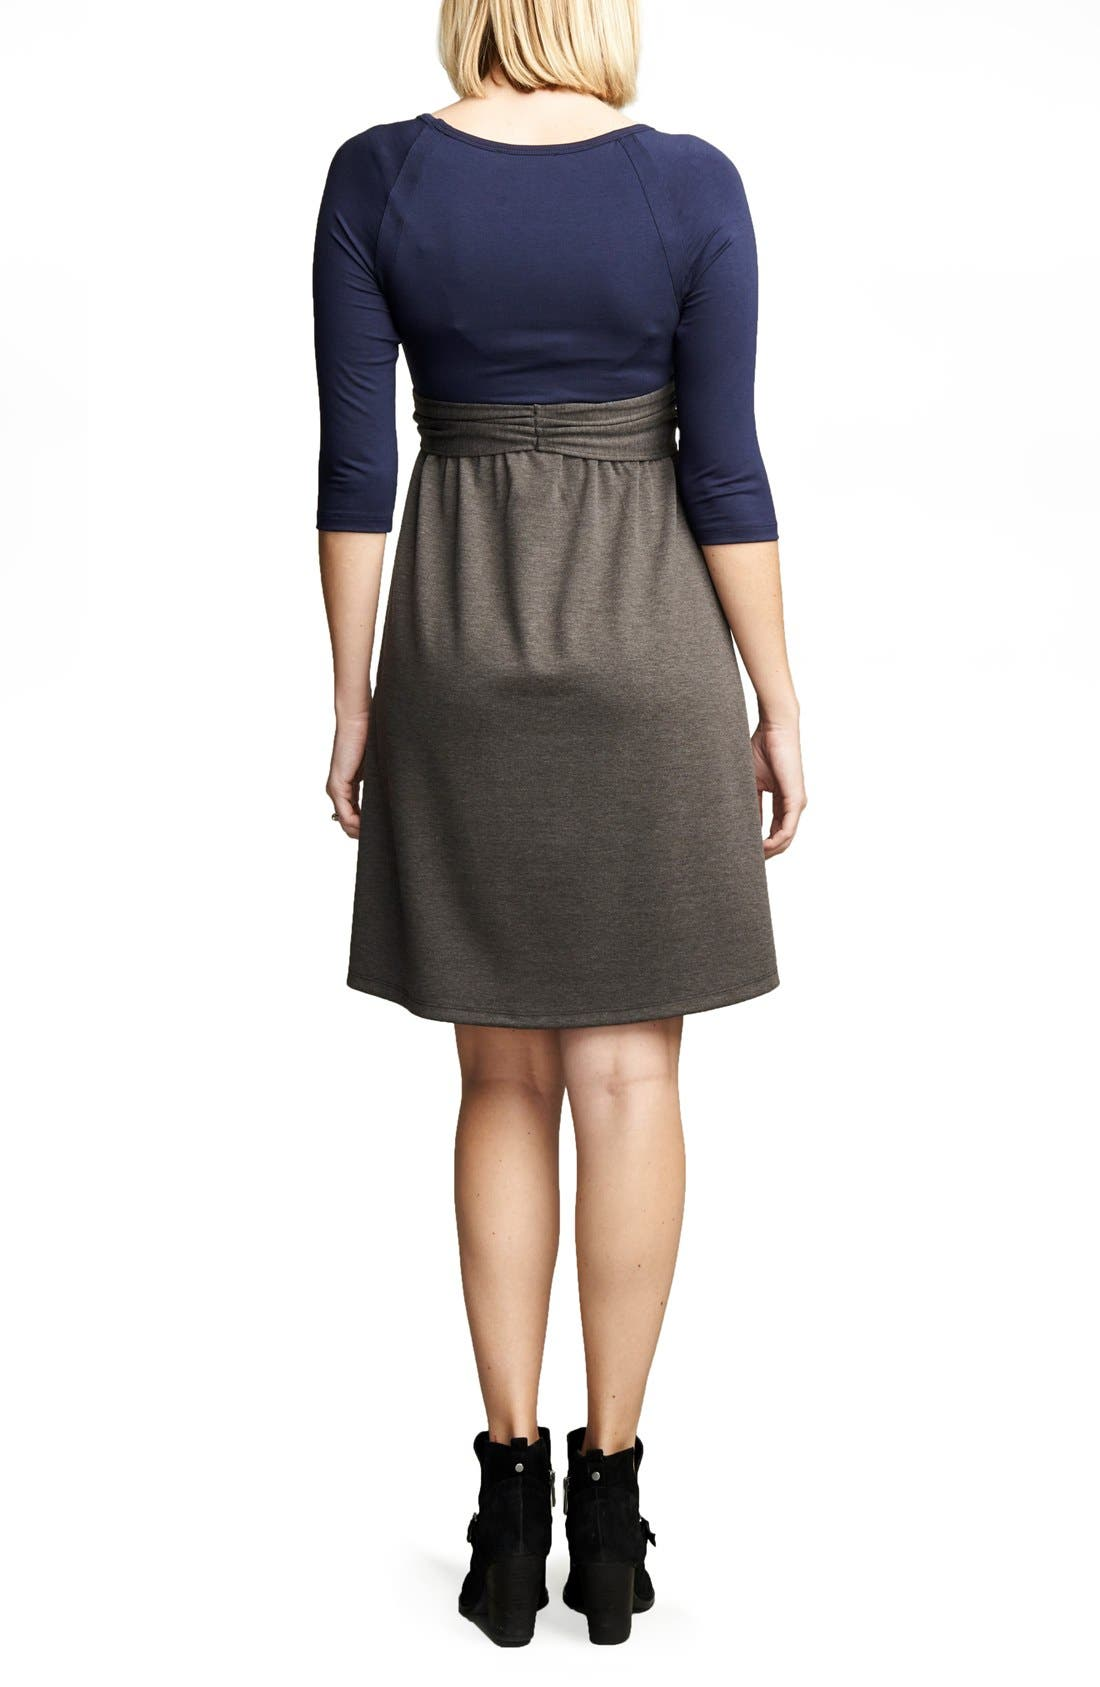 Tie Front Maternity Dress,                             Alternate thumbnail 2, color,                             Navy/Charcoal